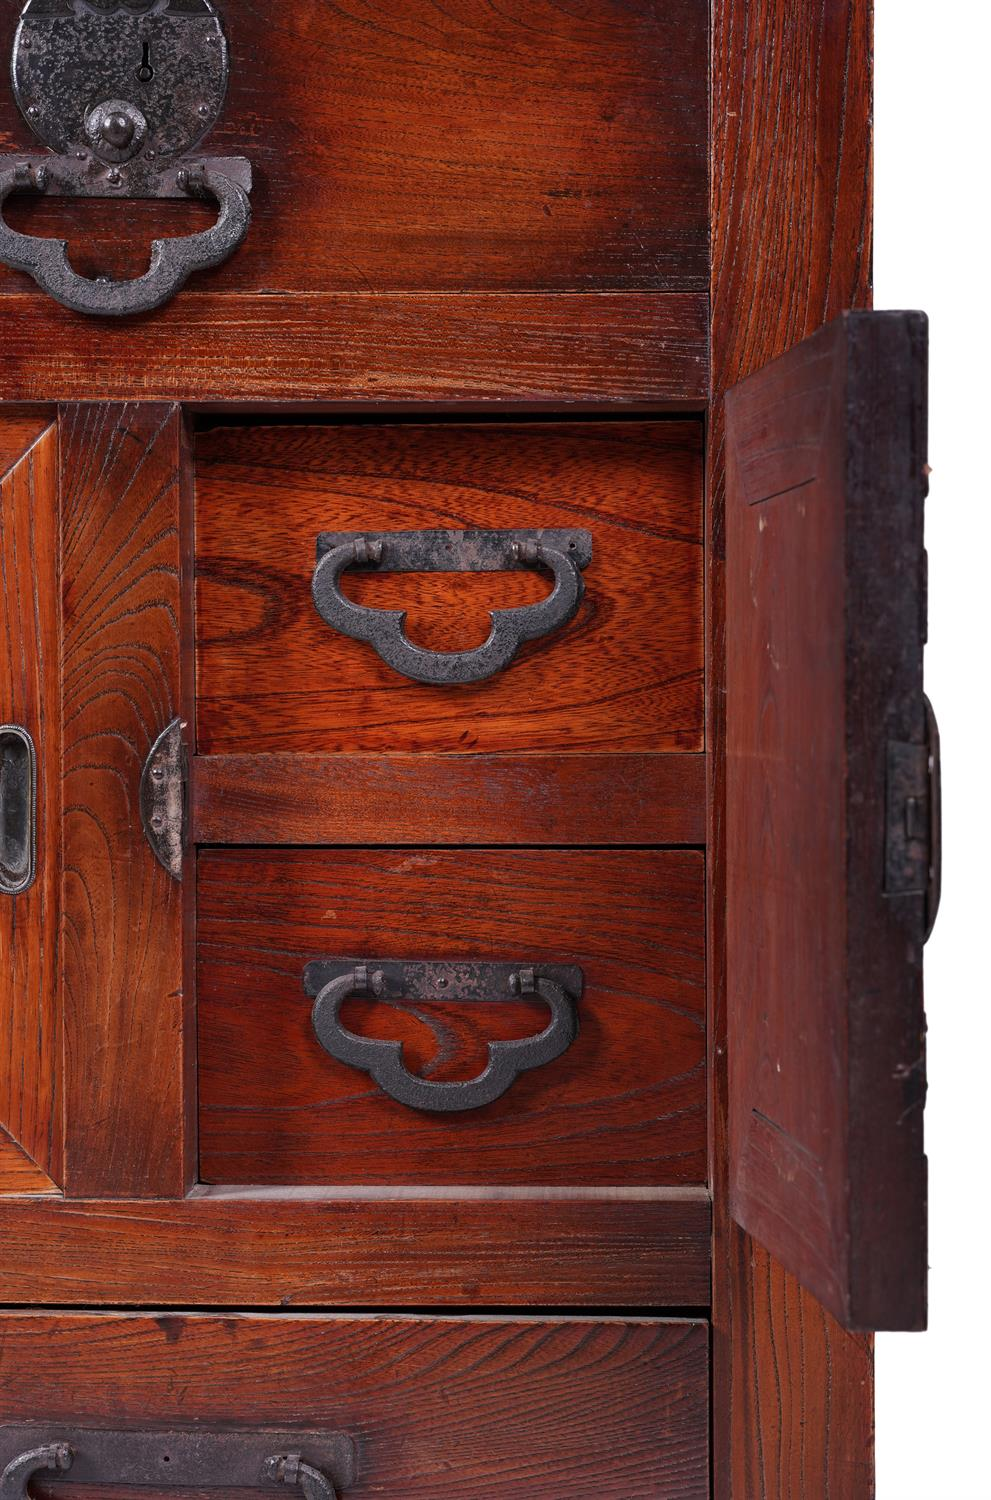 .A KEYAKI AND HINOKI WOOD DOCUMENT CHEST, CHOBA DANSU Japan, Meiji period The front part opening - Image 2 of 3